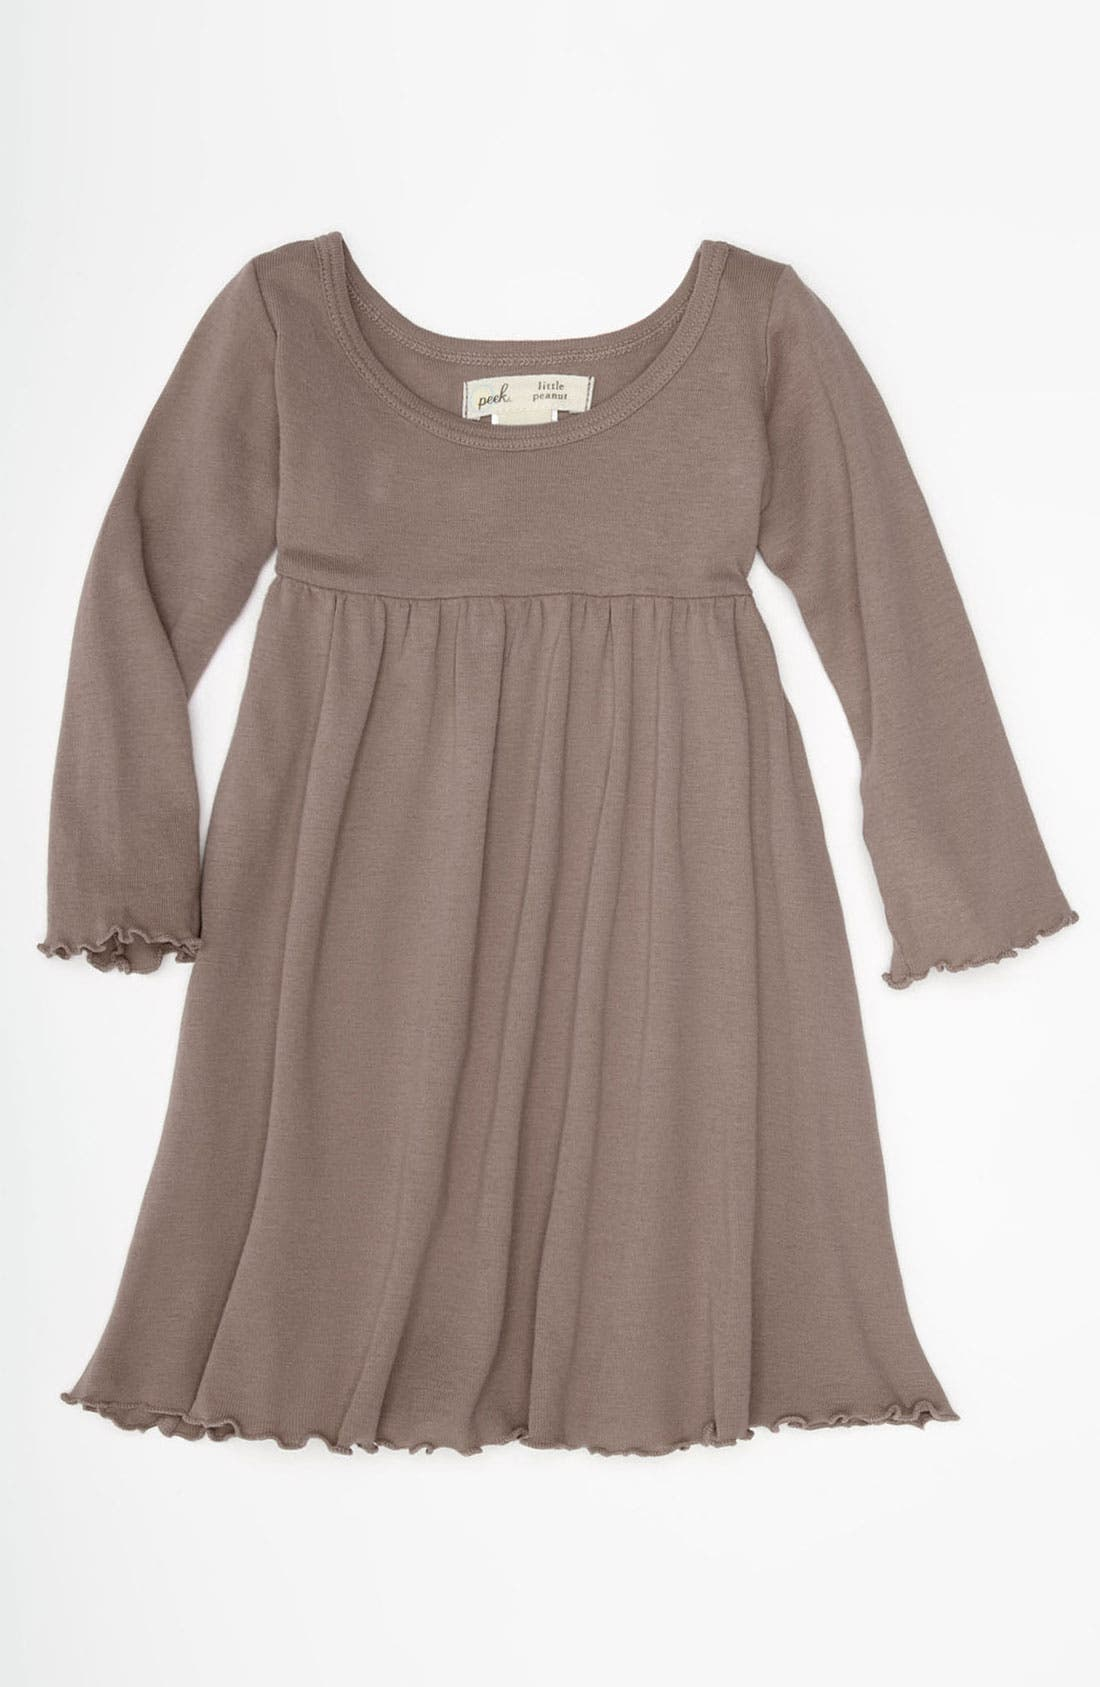 Main Image - Peek 'Little Peanut' Long Sleeve Dress (Baby)